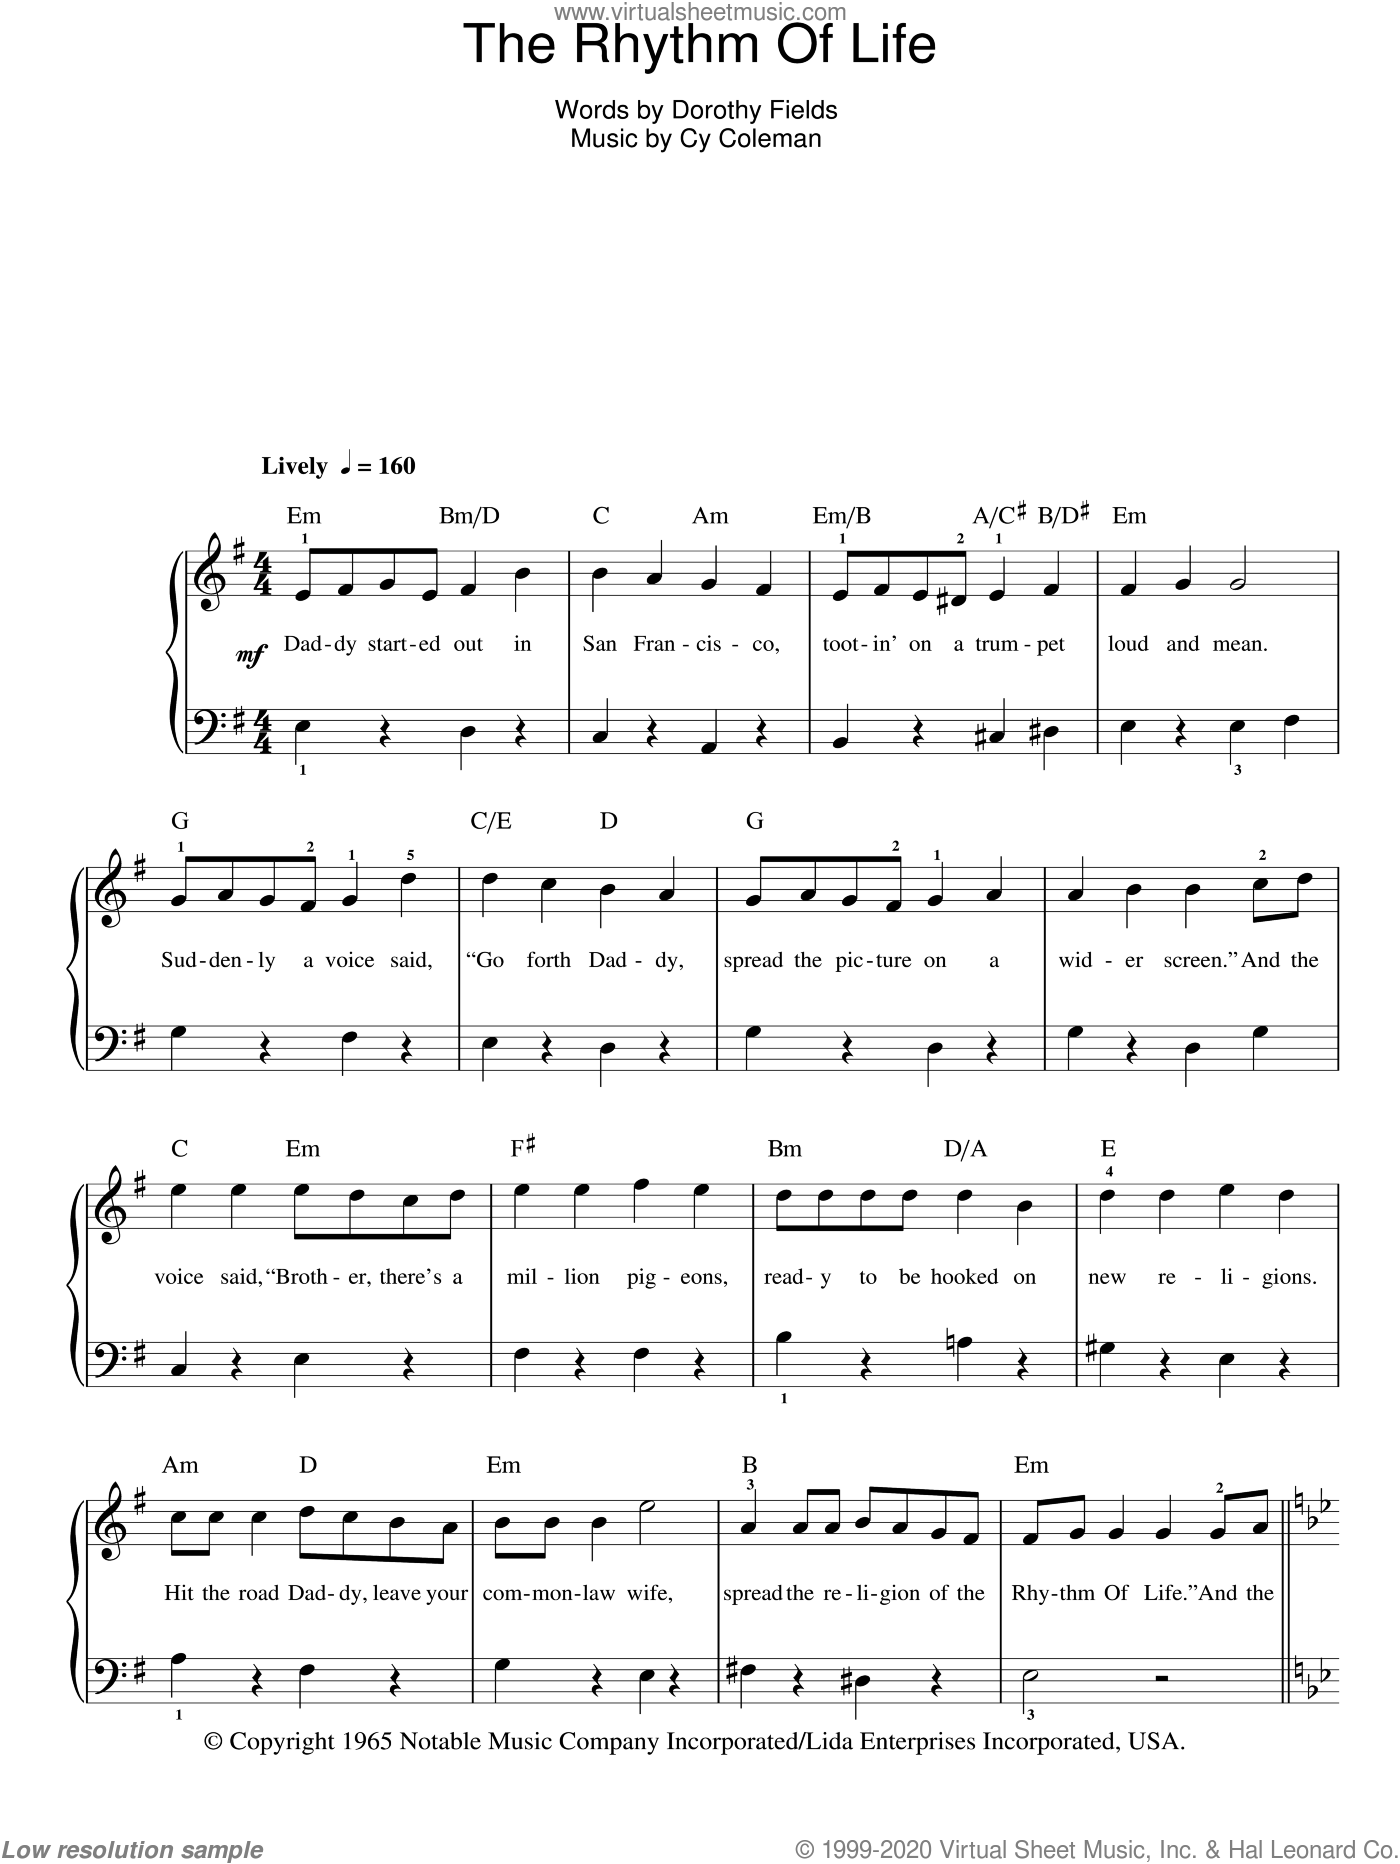 The Rhythm Of Life sheet music for piano solo by Cy Coleman and Dorothy Fields, easy. Score Image Preview.